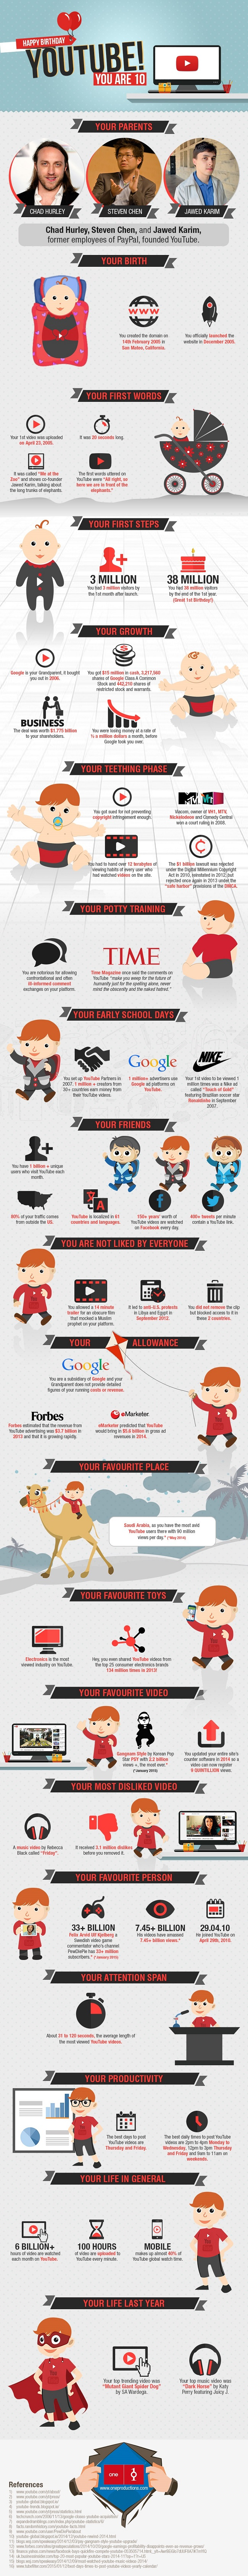 YouTube-history-infographic